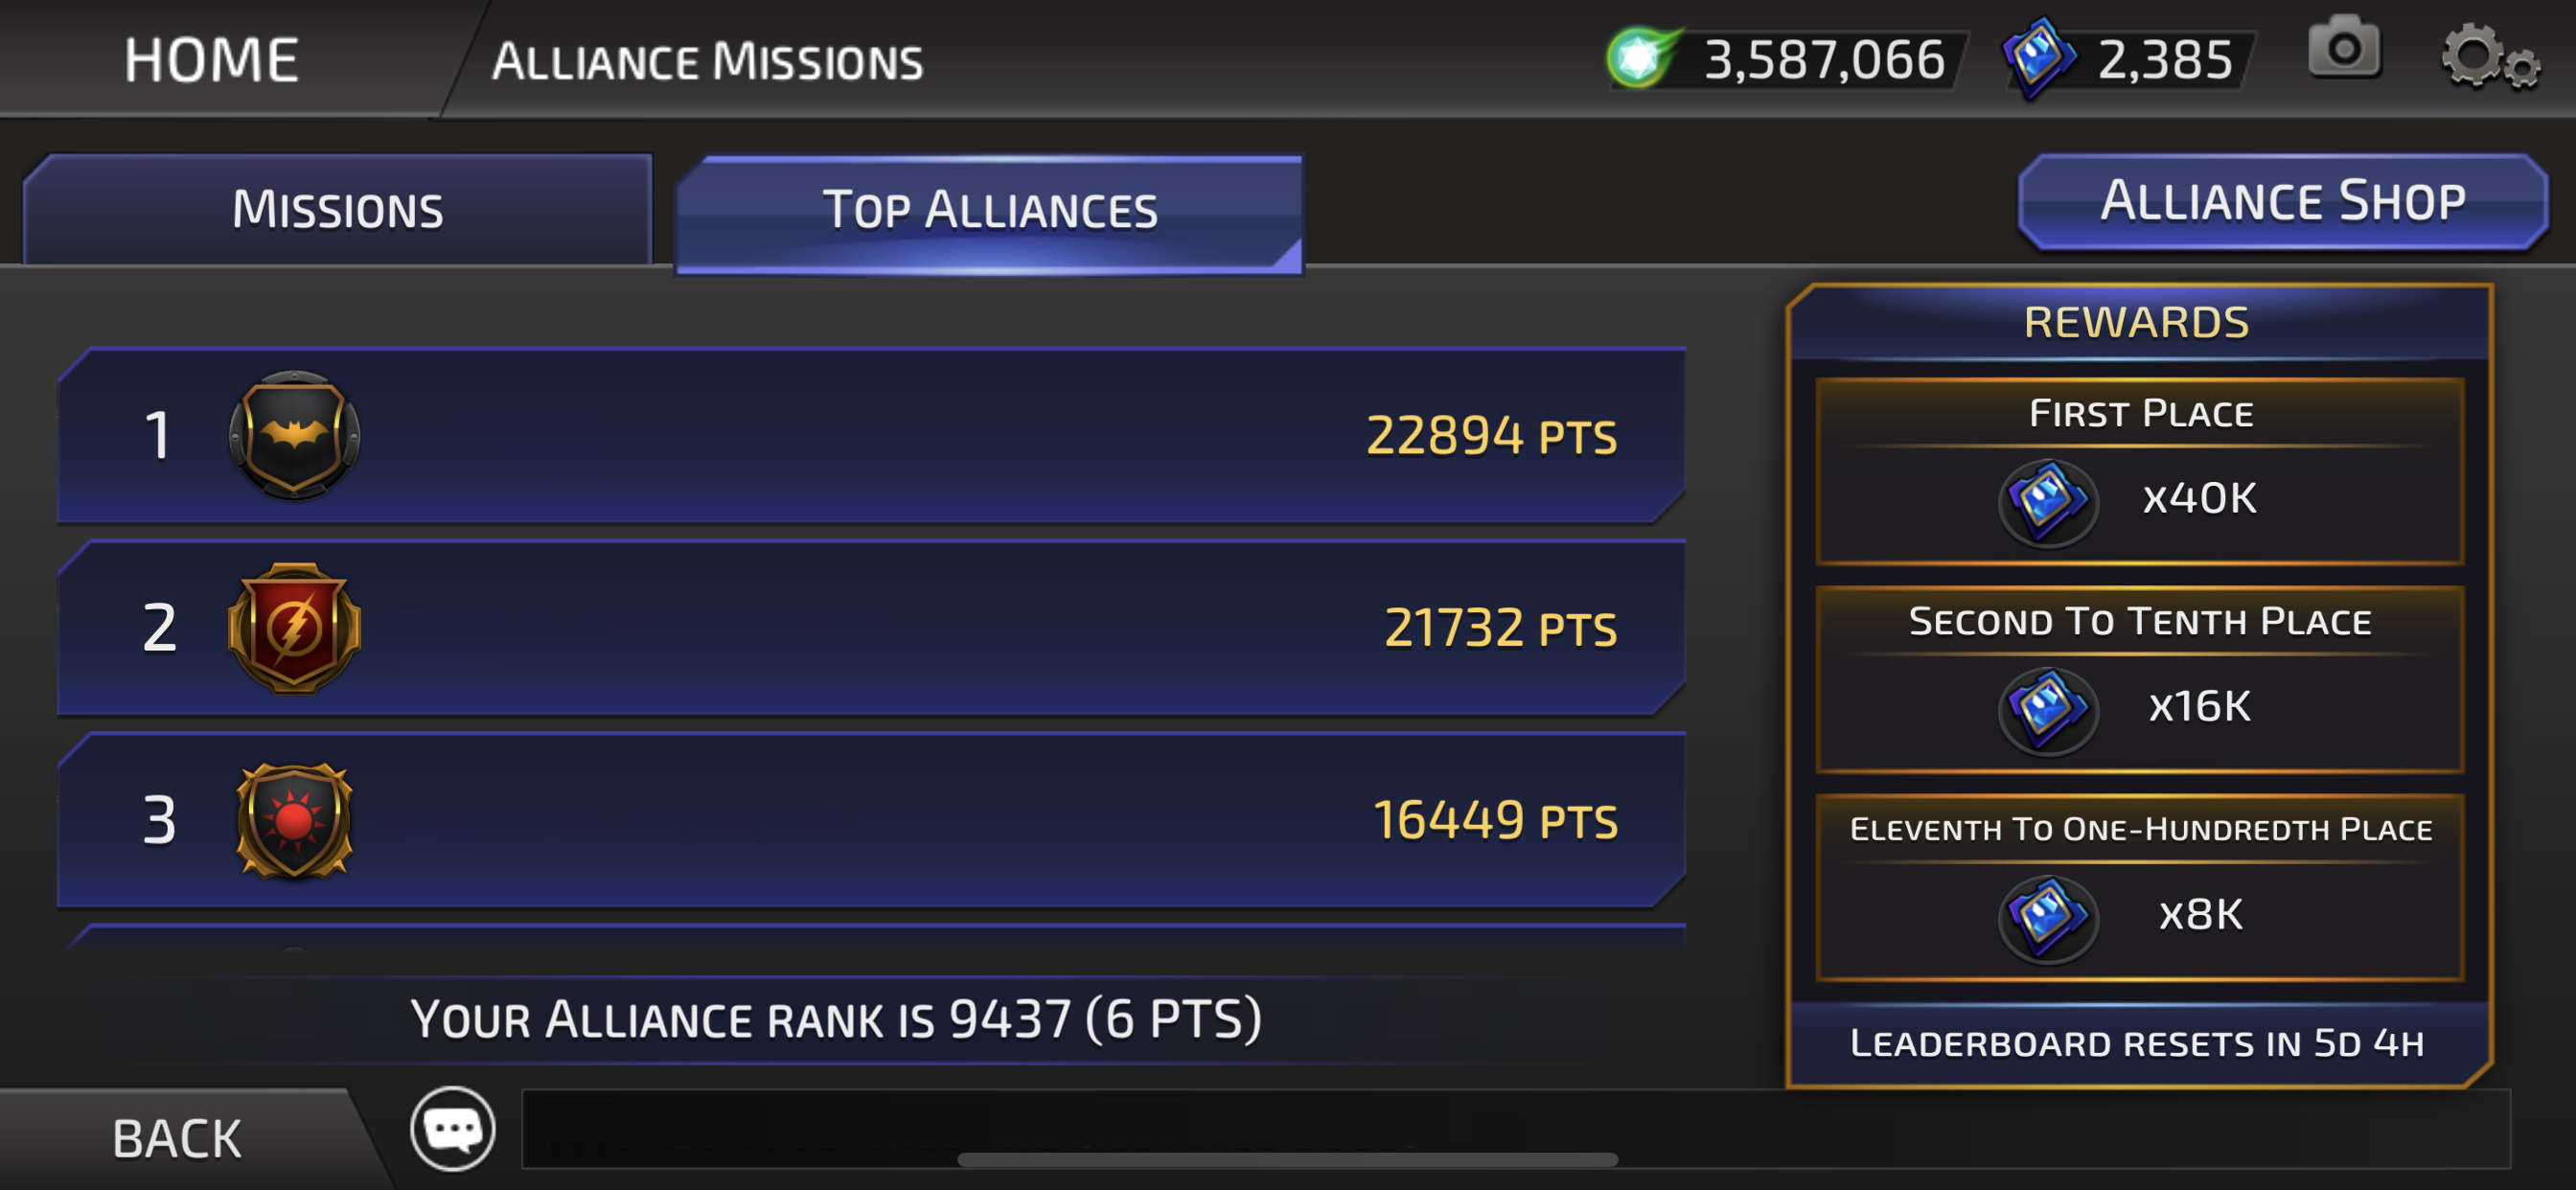 top_alliances.jpg